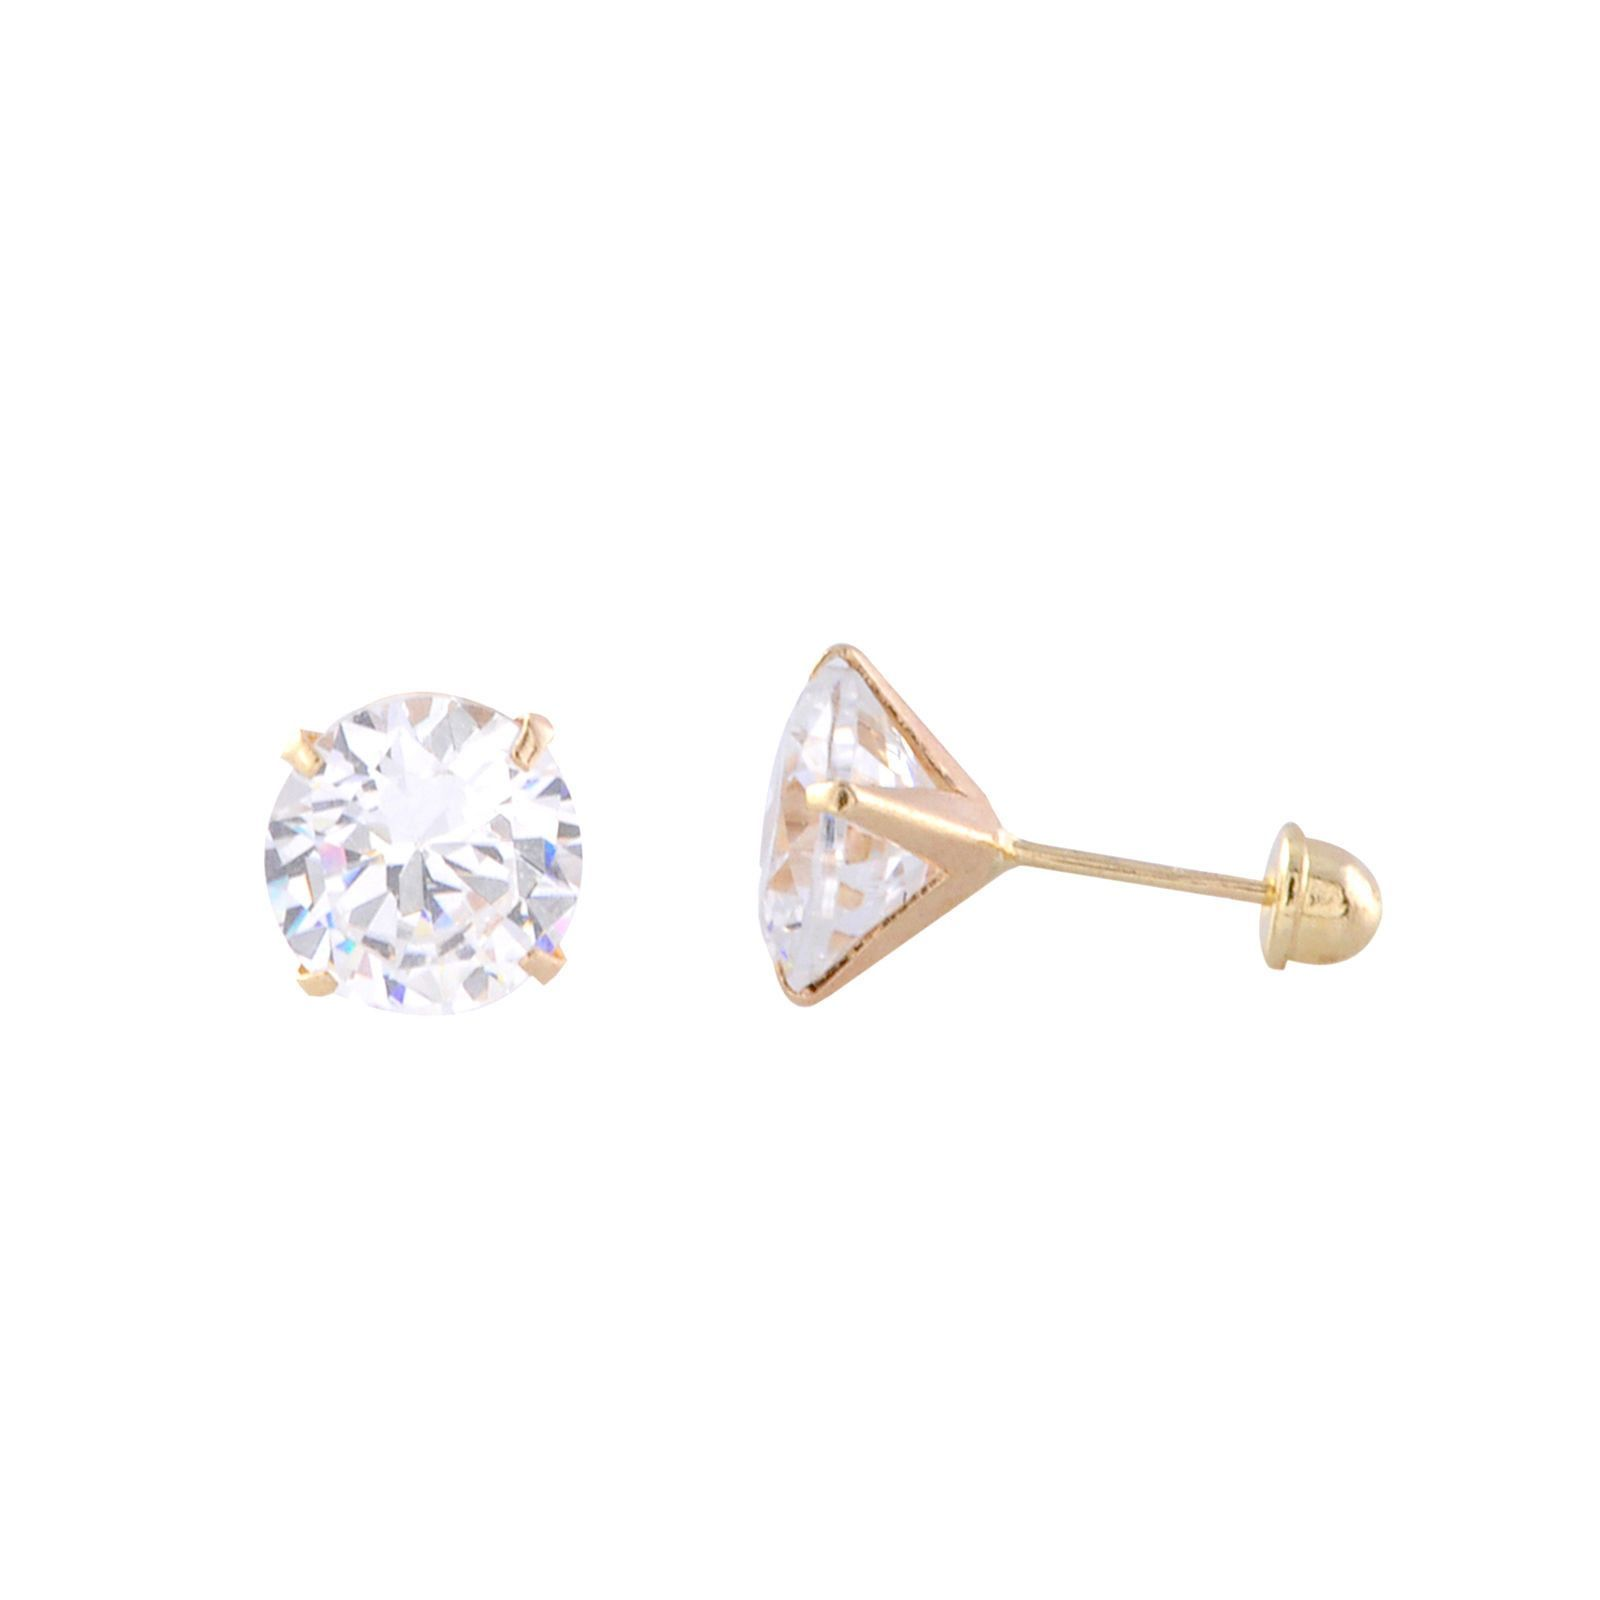 10k Yellow Gold Handmade Sculpted Cz Stud Earrings Round 4 Prong Martini Setting Cz Stud Earrings Stud Earrings Round Earrings